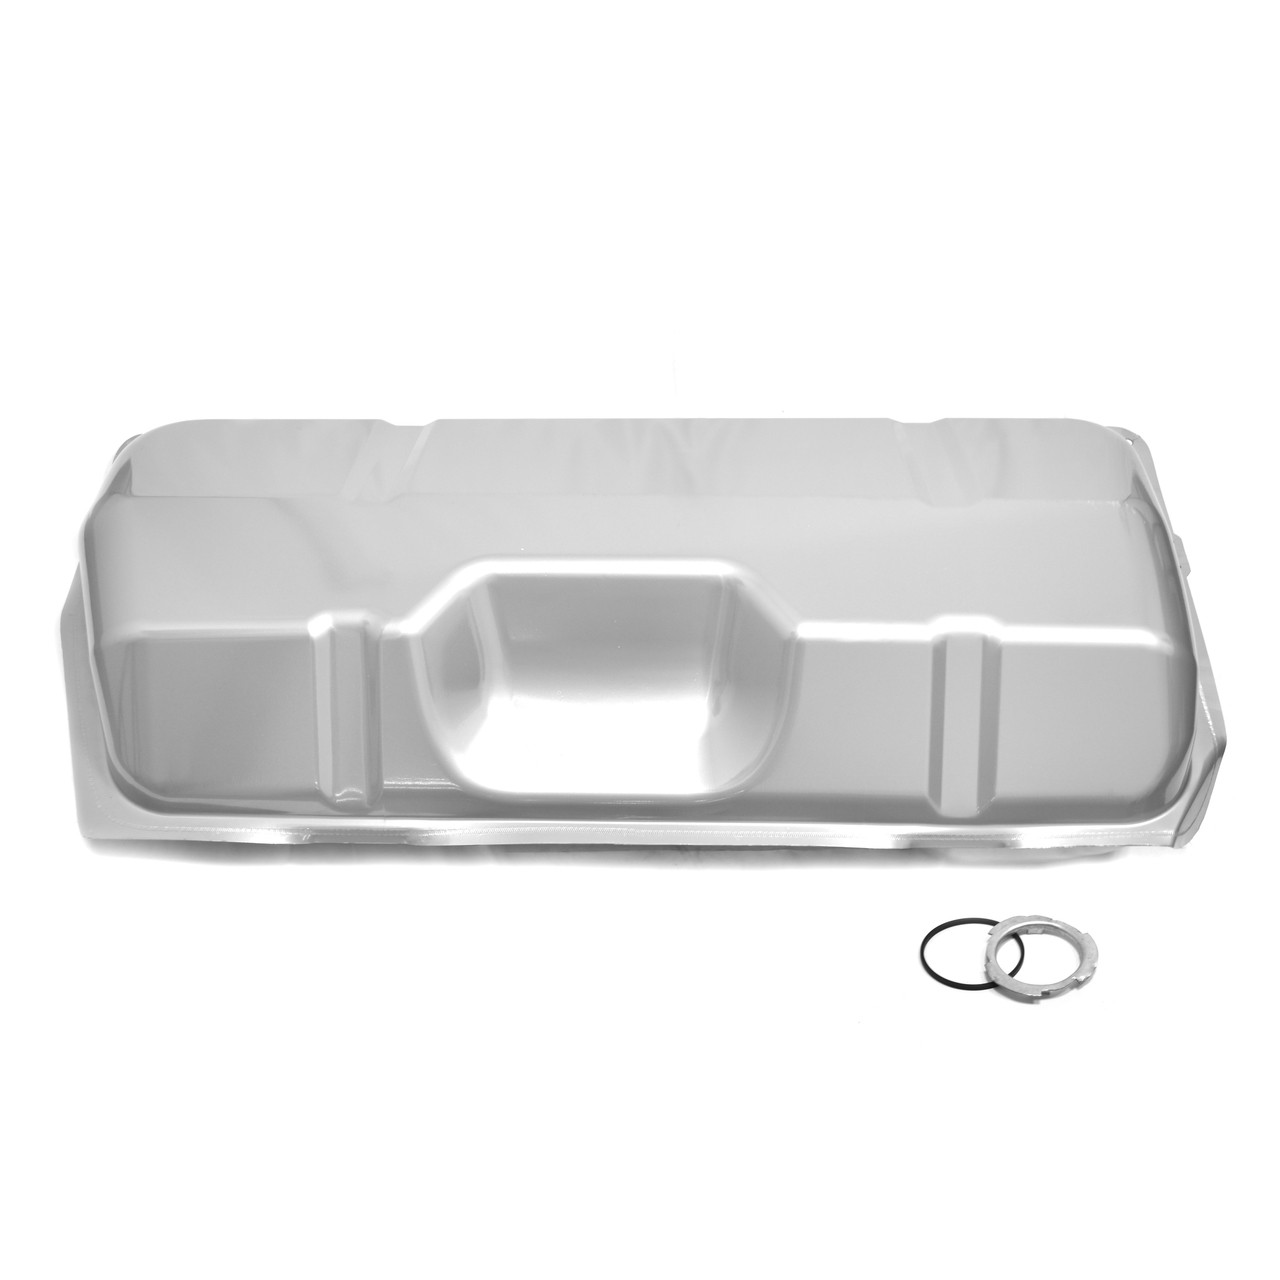 Fuel Tank 15.4 Gallon For External Fuel Pump Without Fuel Injection From 4/1981 [FM-EG004]